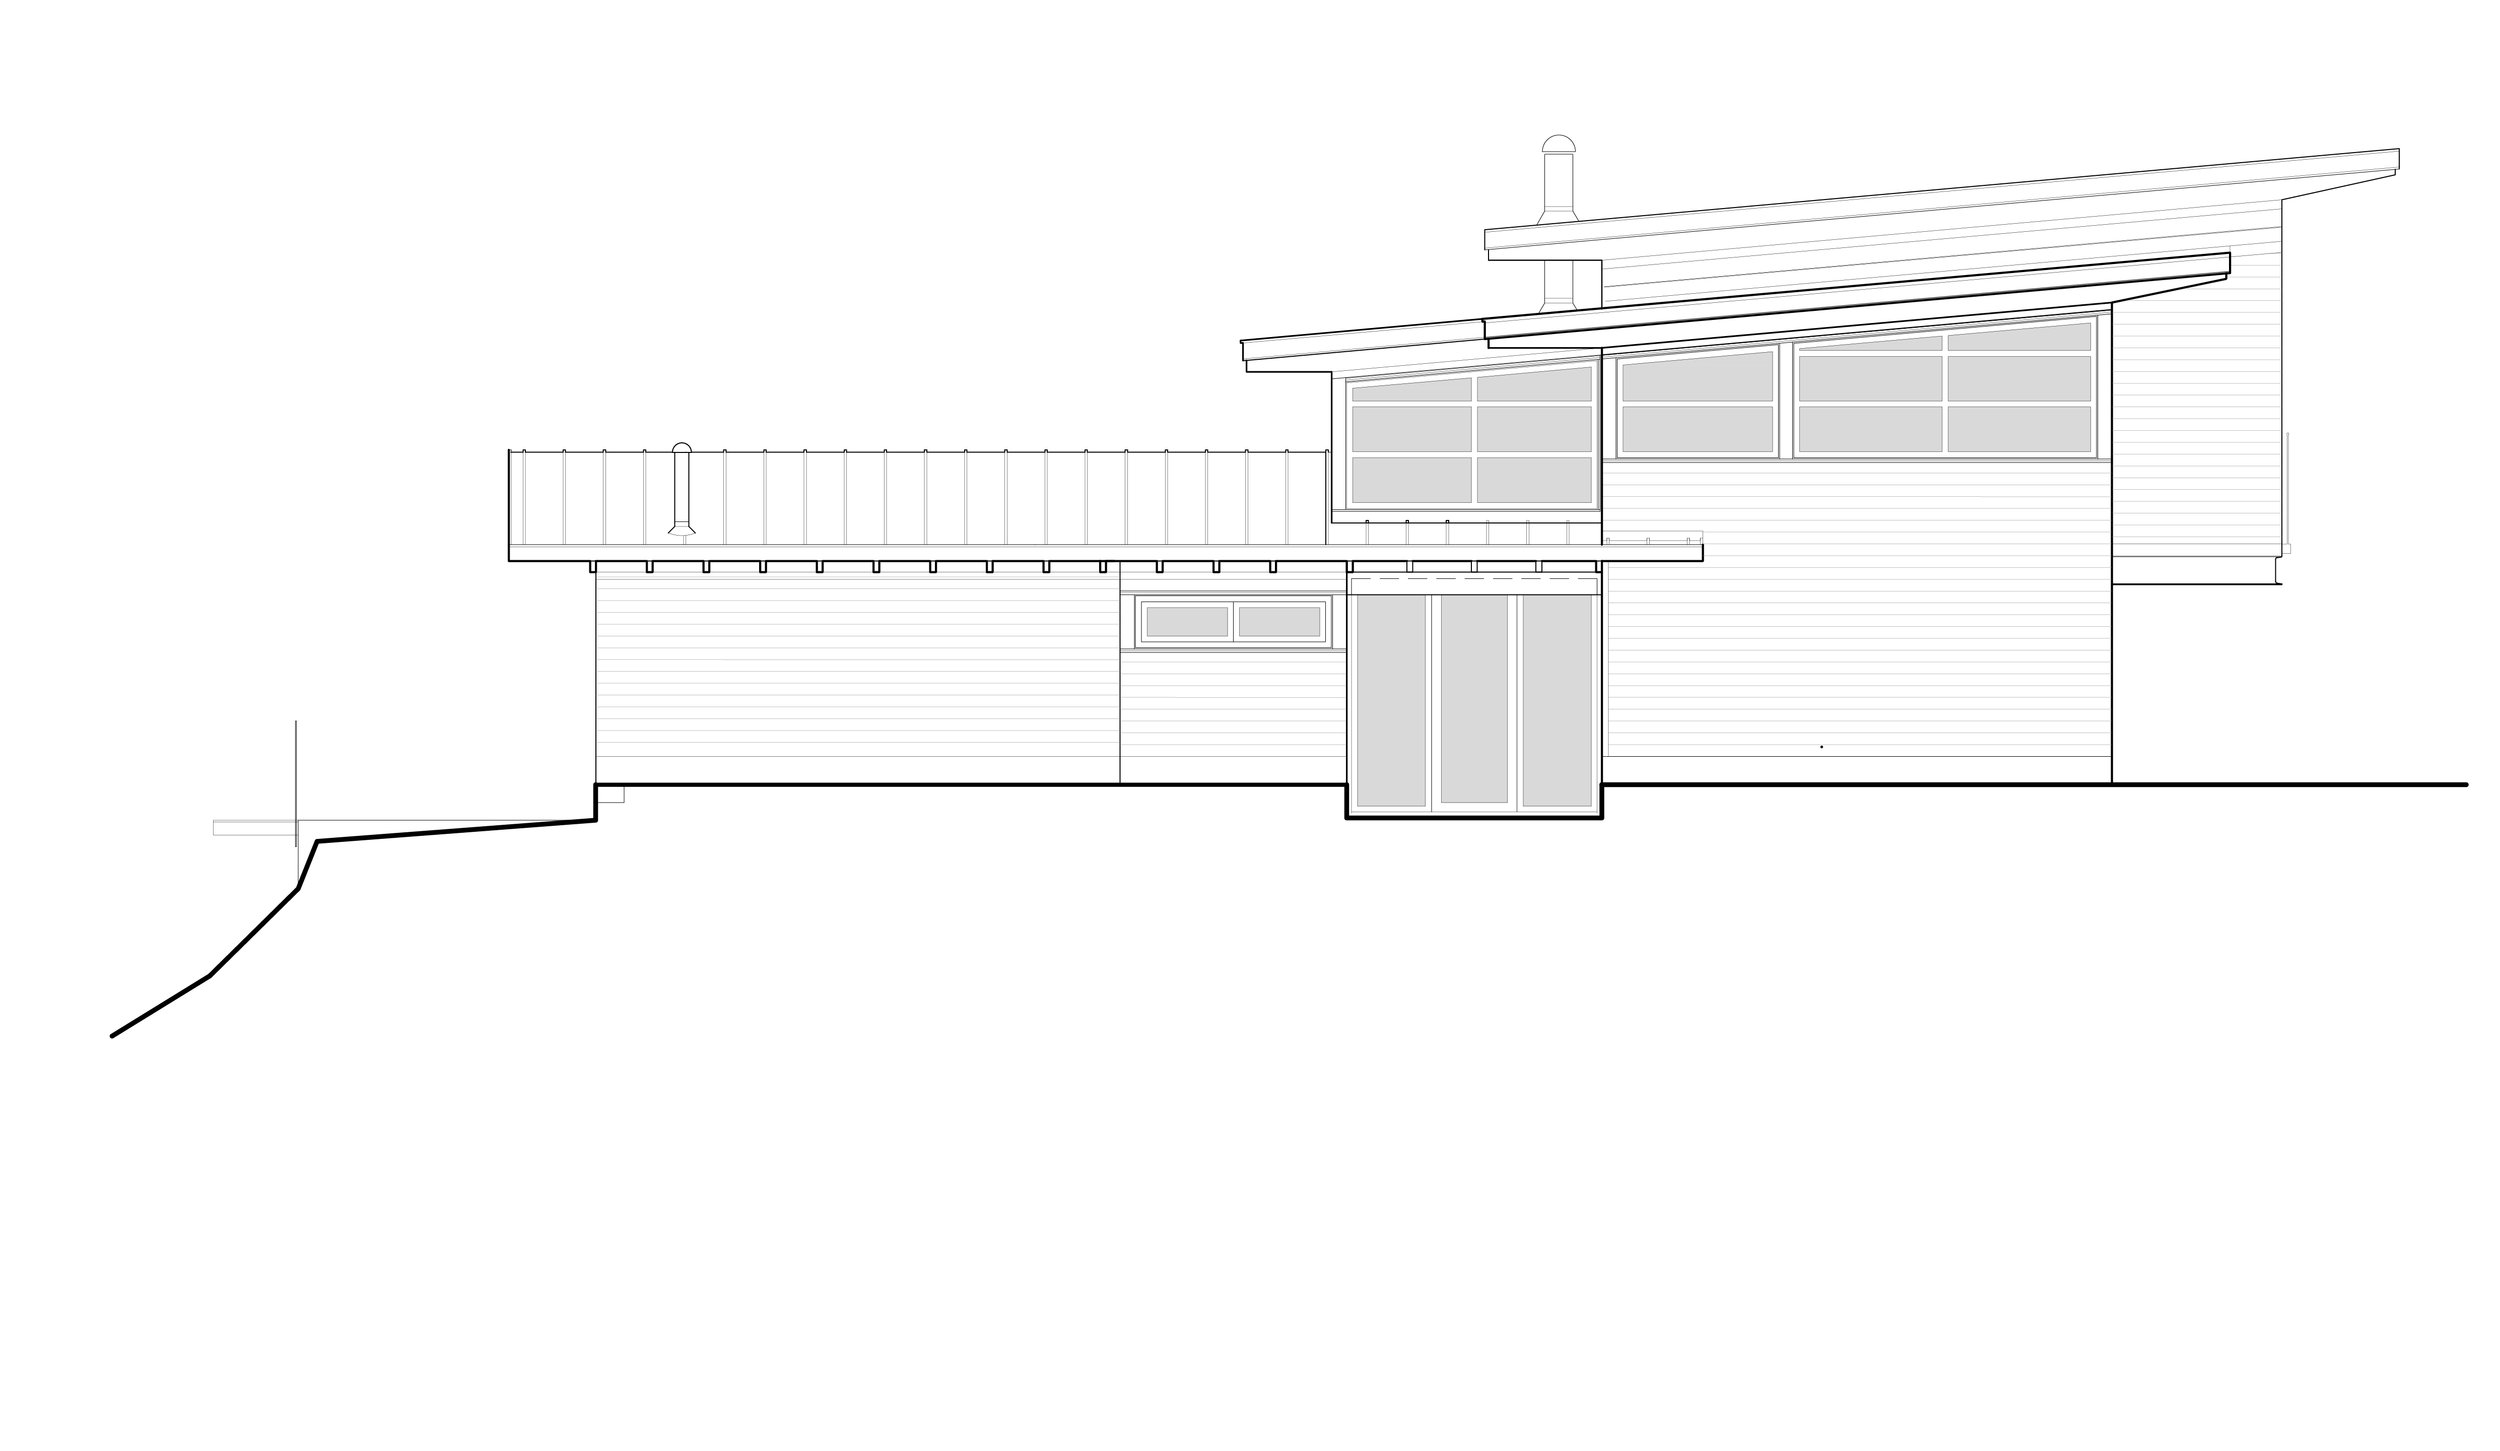 Pozer_20181011_Presentation South Elevation.jpg